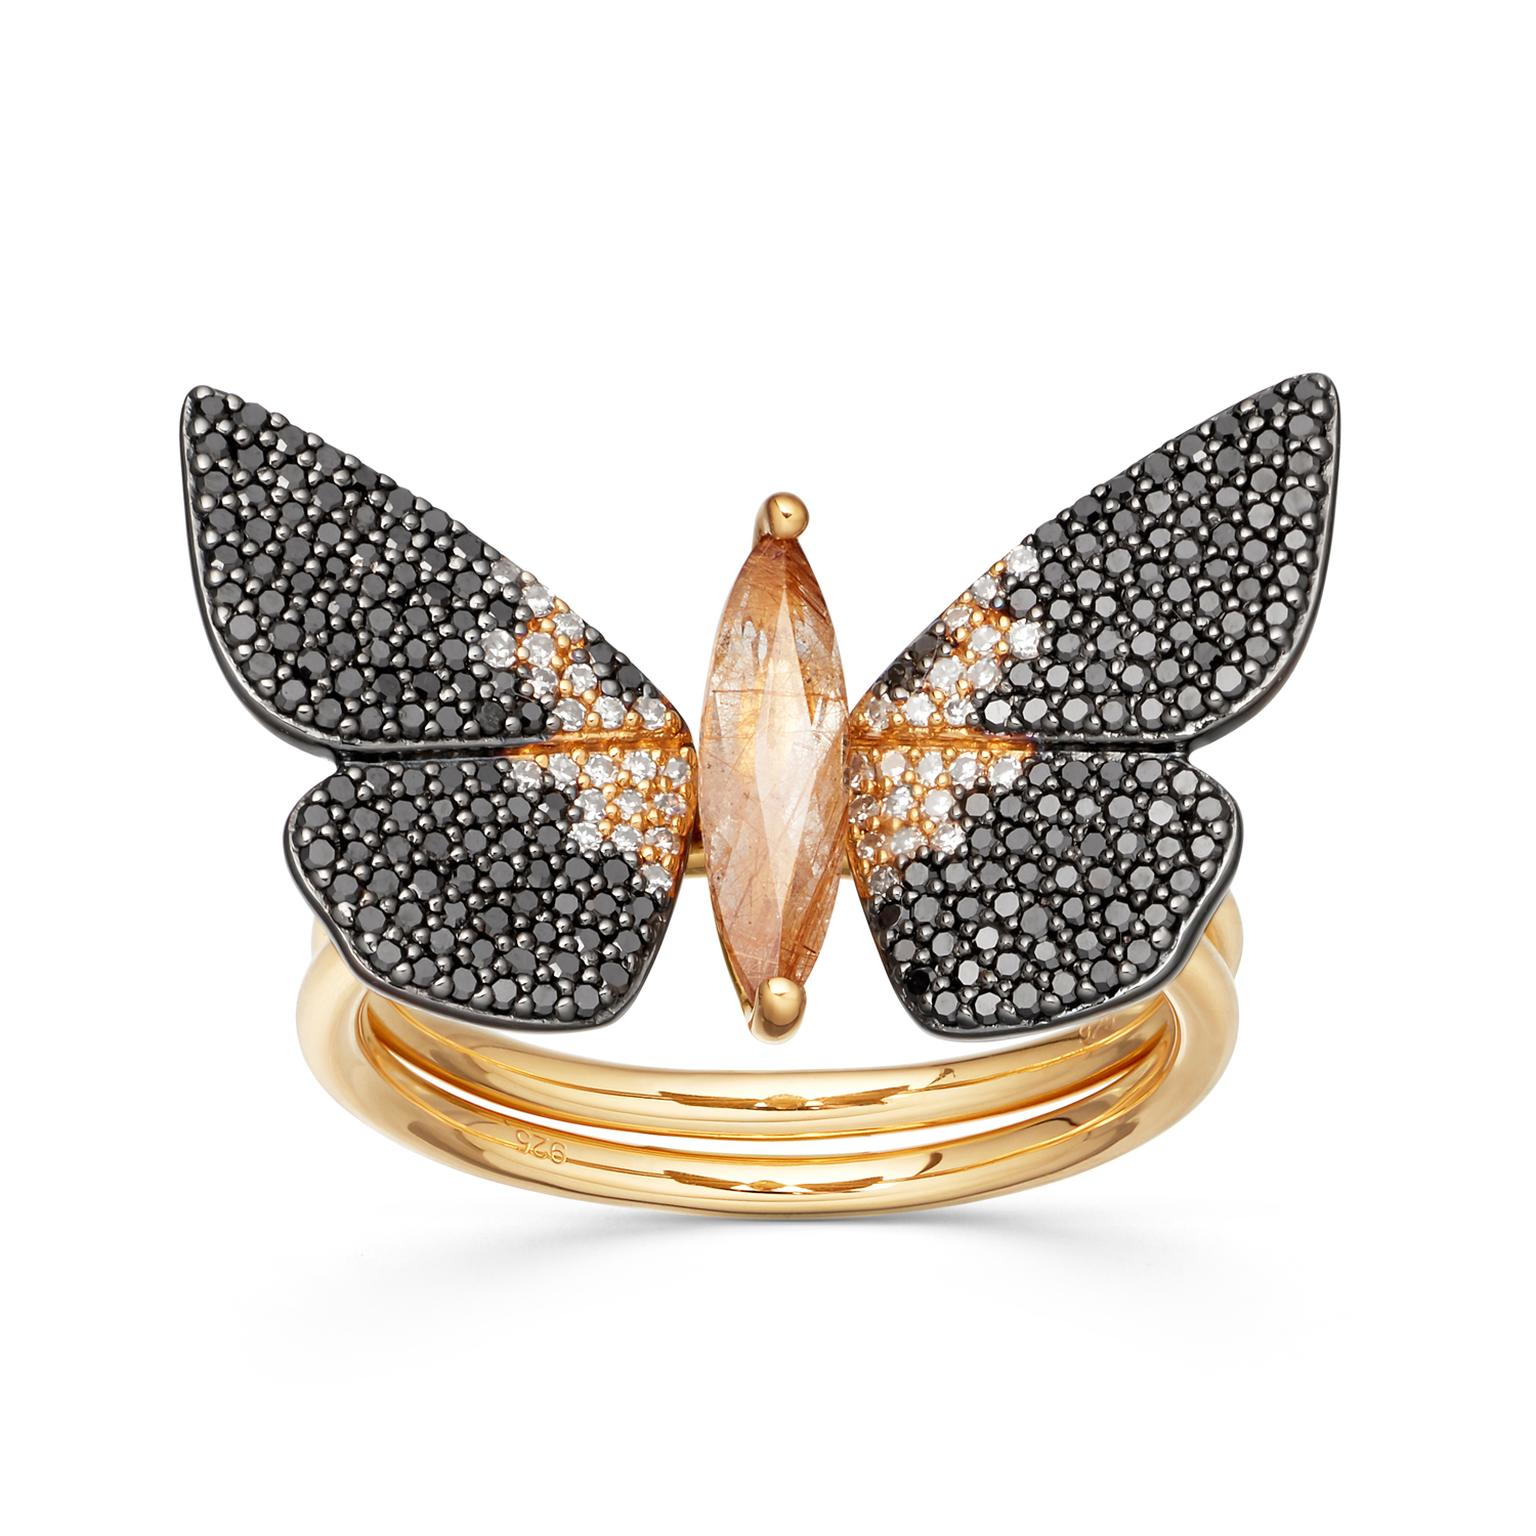 Astley Clarke Phototaxis Magpie Moth ring